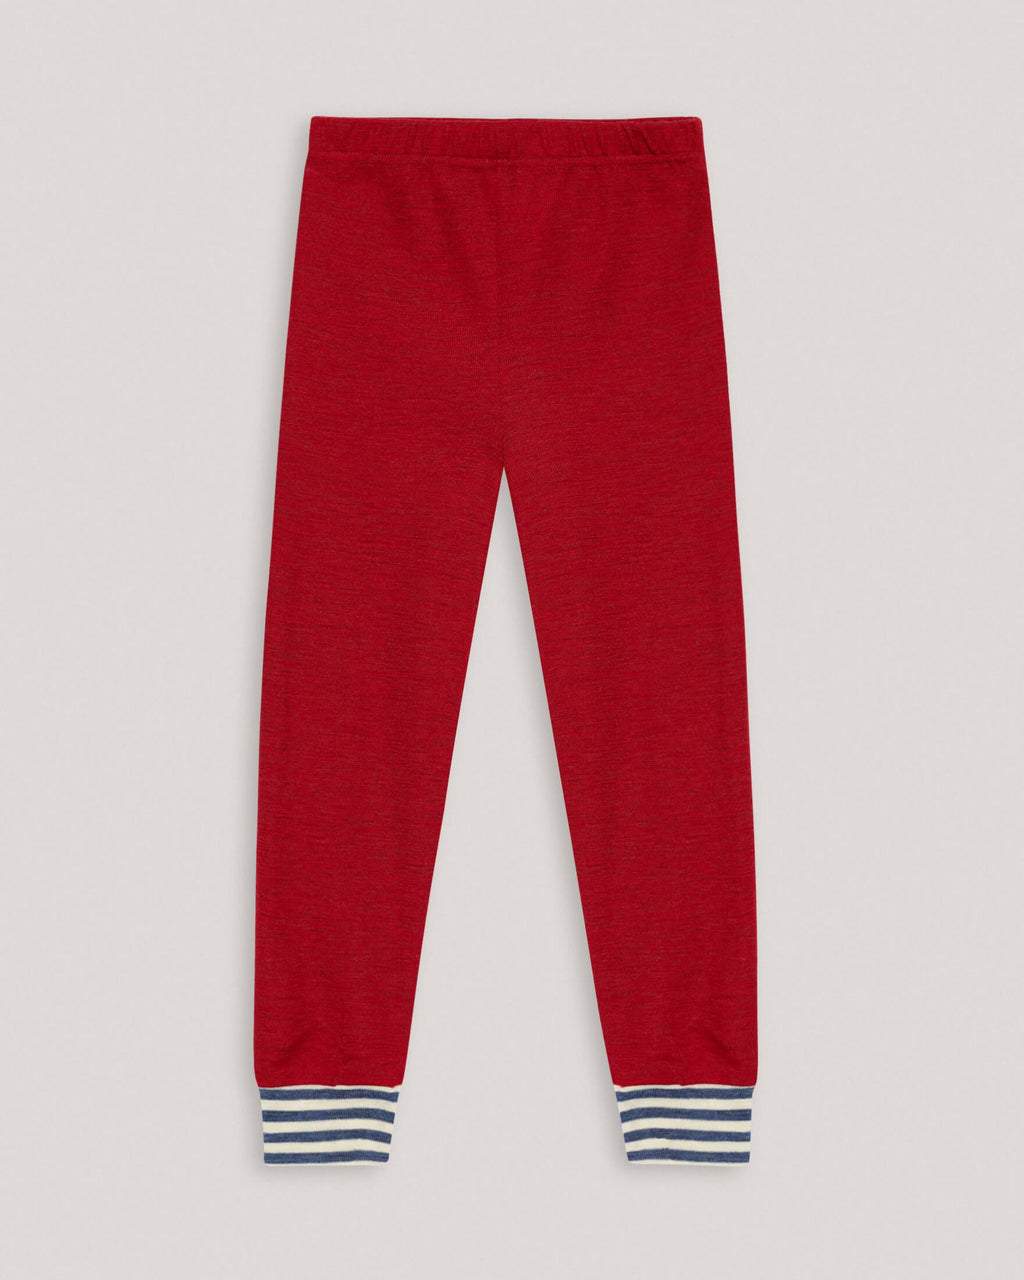 variant_1 | EN Red Kids Trousers Freetime | DE Rot Kinderhose Freizeit